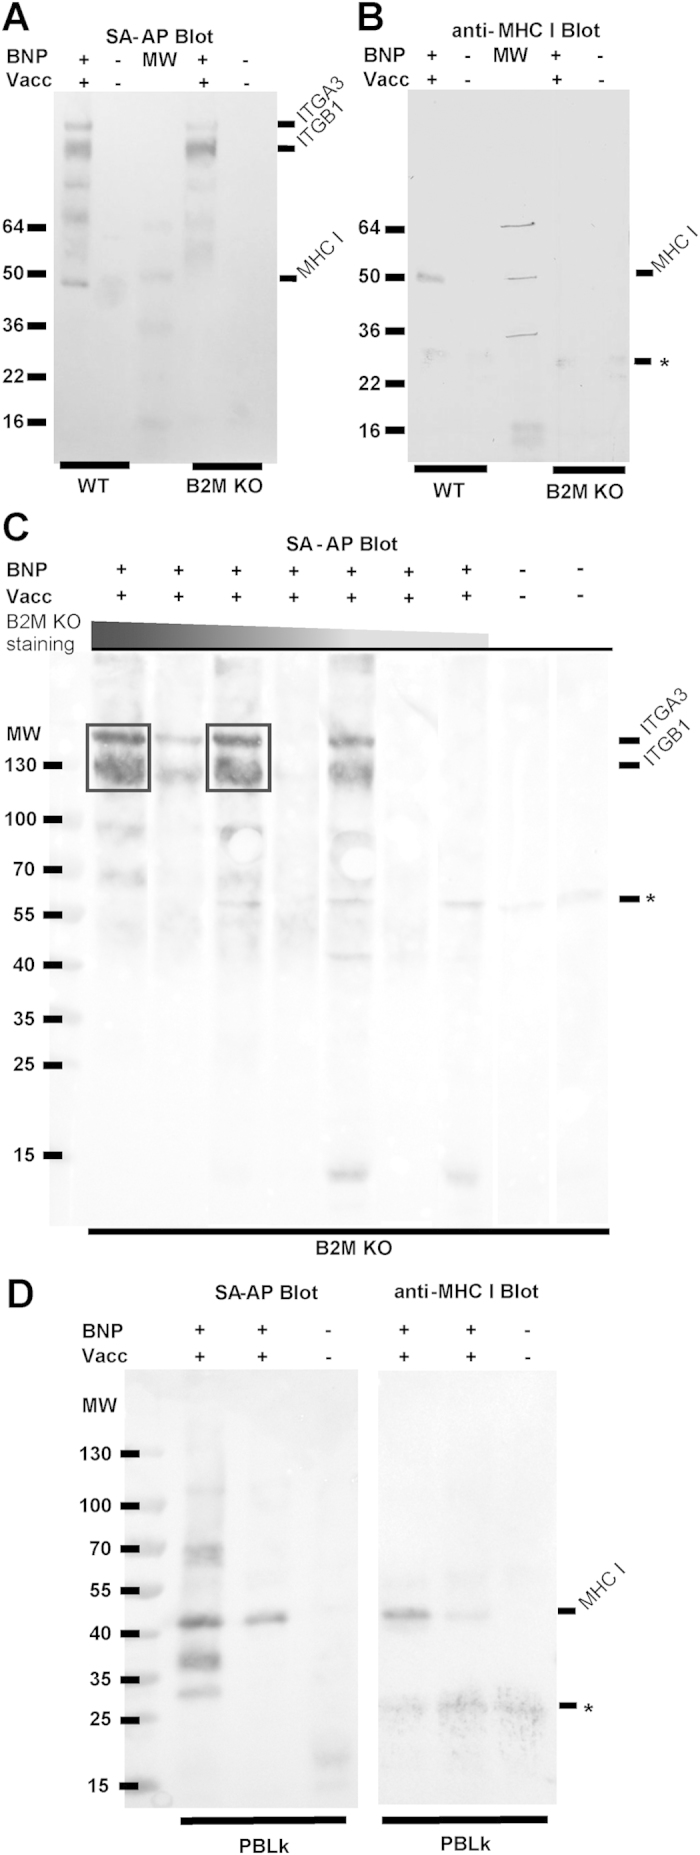 Sera from BNP dams recognize MHC class I and non-MHC class I targets. Cell surface proteins of wild-type MDBK (WT), B2M KO MDBK (B2M KO) or PBLk were <t>biotinylated</t> and subsequently stained with sera of Pregsure© BVD-vaccinated BNP dams (BNP+Vacc+) or control dams not vaccinated with Pregsure© BVD (BNP−Vacc−). After washing away unbound Abs, cells were lysed. Abs and bound Ag were precipitated using Protein G coupled dynabeads, separated by non-reducing gel electrophoresis and blotted on nitrocellulose membrane. ( a ) WT and KO MDBK cells were stained with serum from a BNP+Vacc+ dam or a BNP−Vacc− dam. Cell surface proteins were visualized using SA-AP. ( b ) As in A, but <t>immunoprecipitated</t> MHC class I was visualized using anti-bovine MHC class I mAb ILA88. ( c ) B2M KO MDBK cells were stained with sera from BNP+Vacc+ dams (n = 7) and BNP−Vacc− dams (n = 2). Cell surface proteins were visualized using SA-AP. The sera from BNP+Vacc+ dams were ranked according to alloantibody staining intensity of B2M KO MDBK cells as in Fig. 3c . Representative for two separate experiments. ( d ) PBLk from a healthy donor were stained with sera from BNP+Vacc+ dams (n = 2) or a BNP−Vacc− dam. Cell surface proteins and MHC I were visualized using SA-AP and mAb ILA88, respectively. Representative for two separate experiments with different PBLk donors. MW = Molecular weight markers (kDa). ITGB1 = integrin β1. ITGA3 = integrin α3. * = nonspecific signal. Boxes in C indicate regions that were subjected to mass spectrometry analysis.